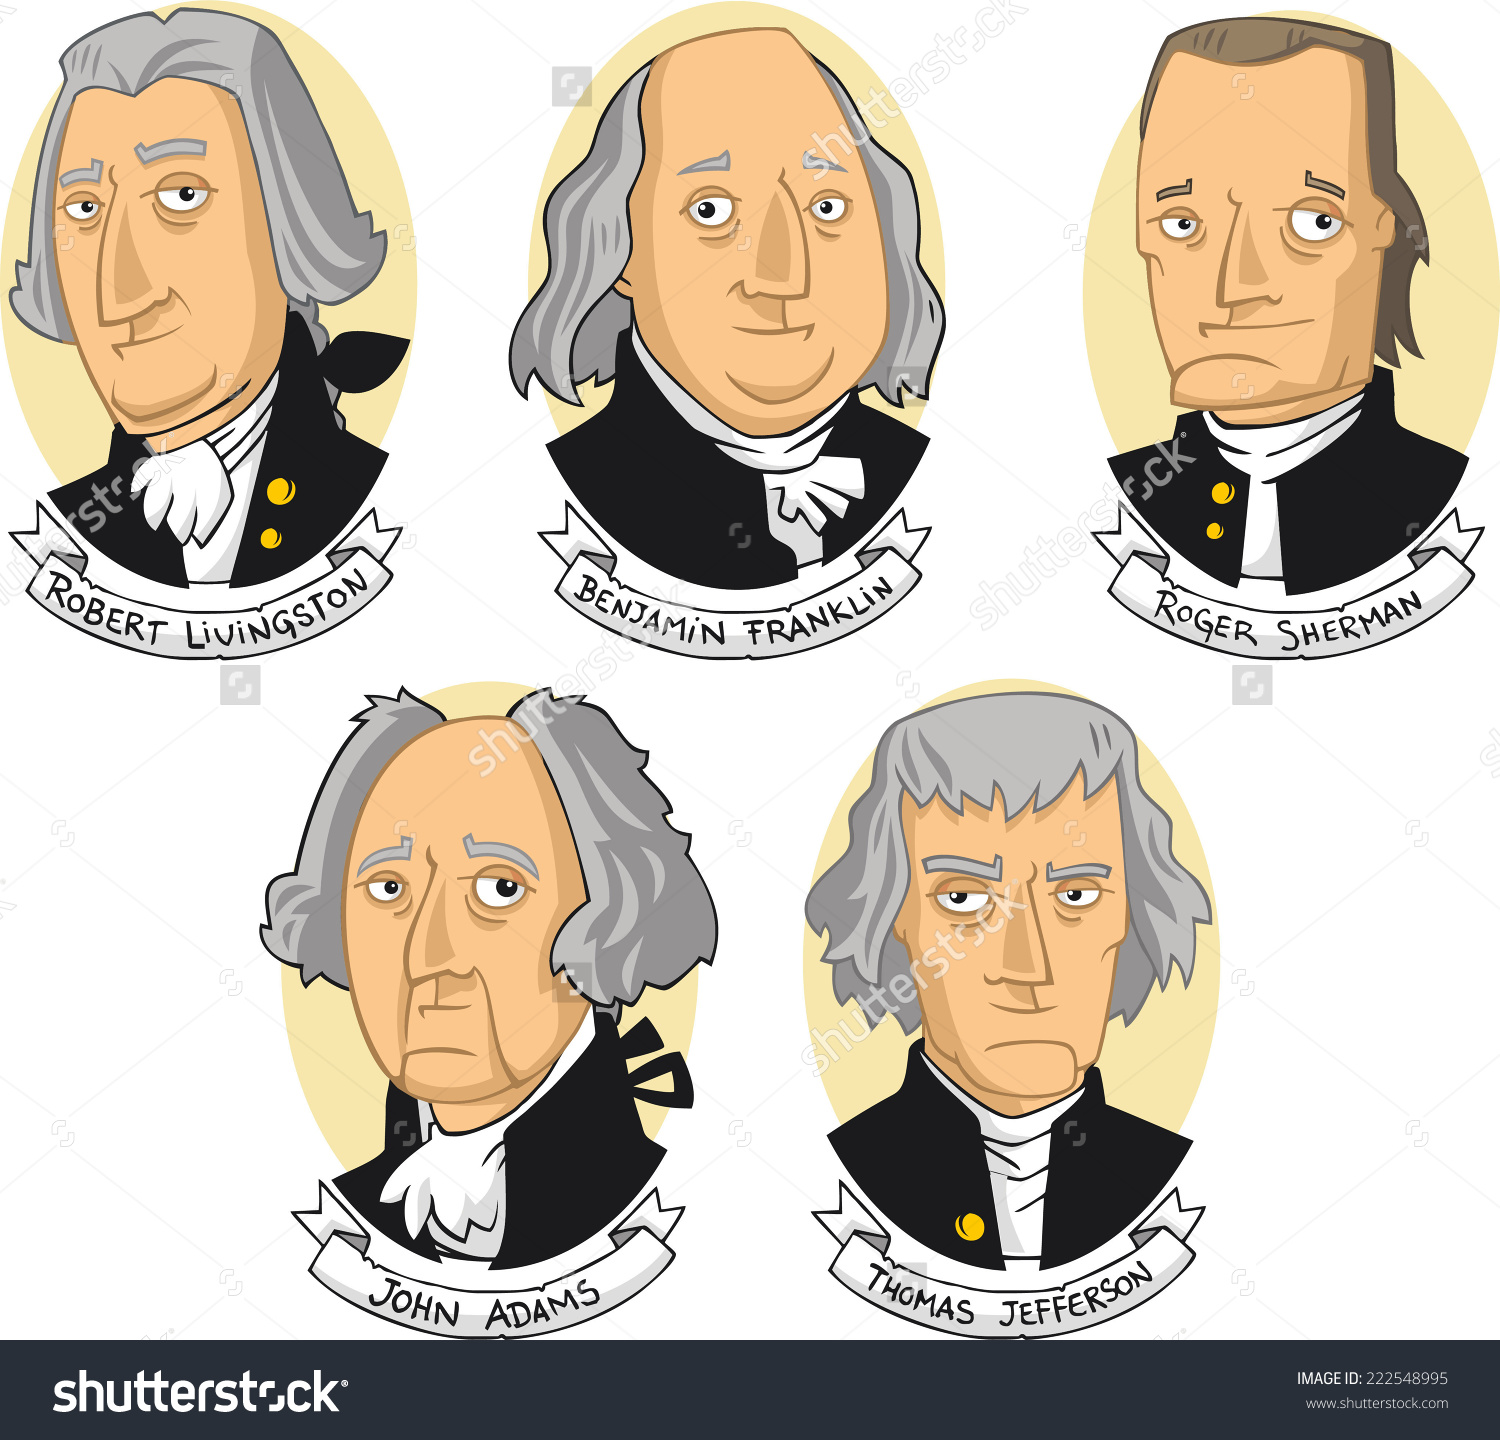 Founding fathers clipart.